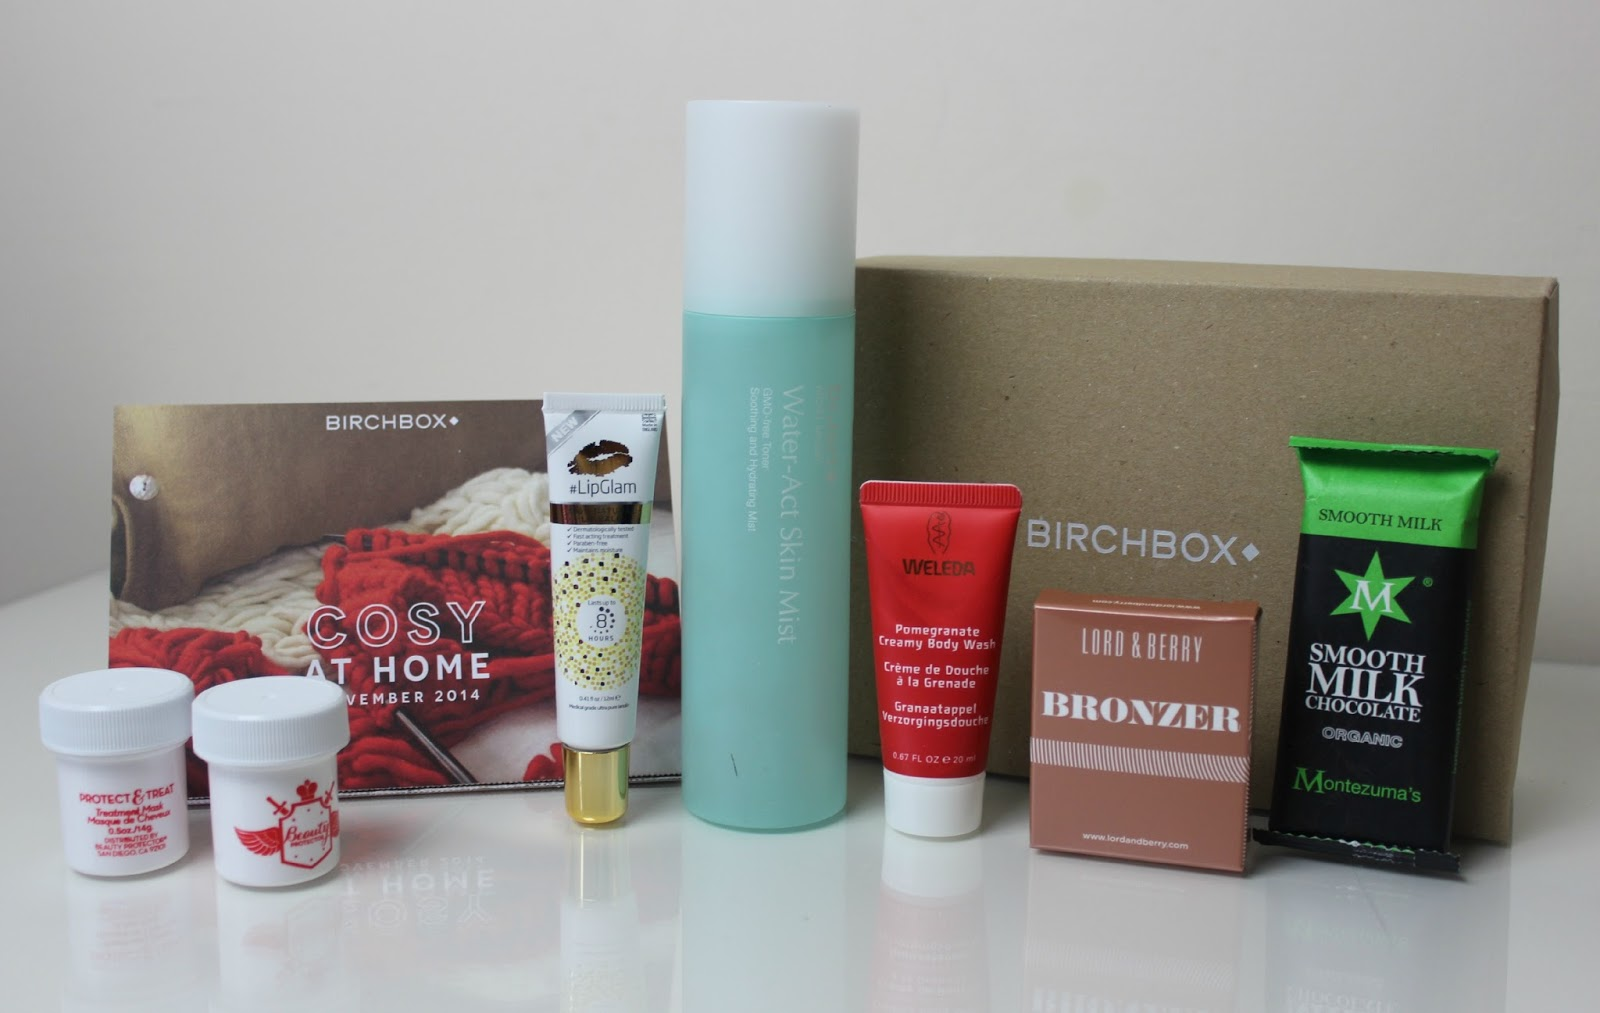 A picture of the Cosy at Home November 2014 Birchbox